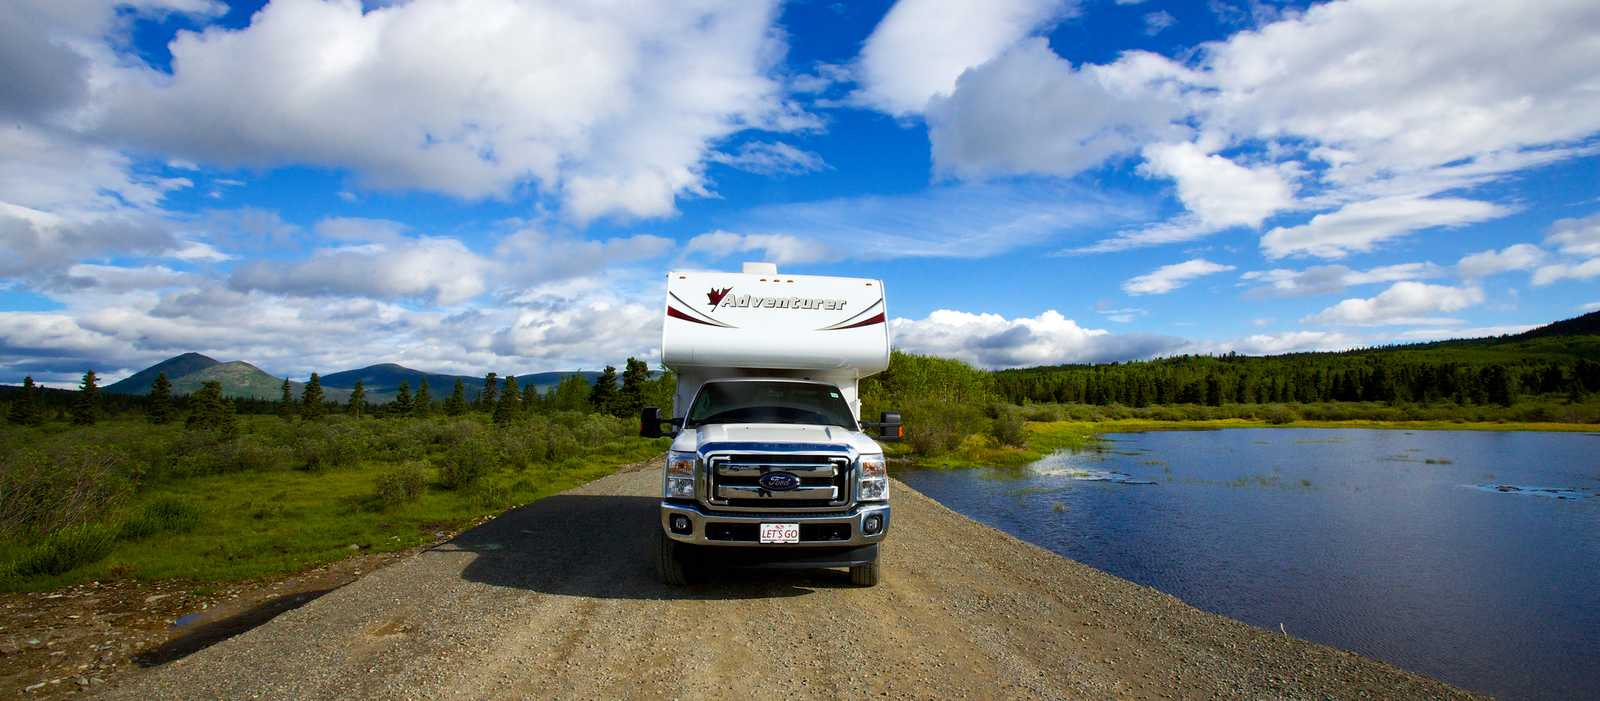 Camper am Yukon Fish Lake in Yukon, Canada